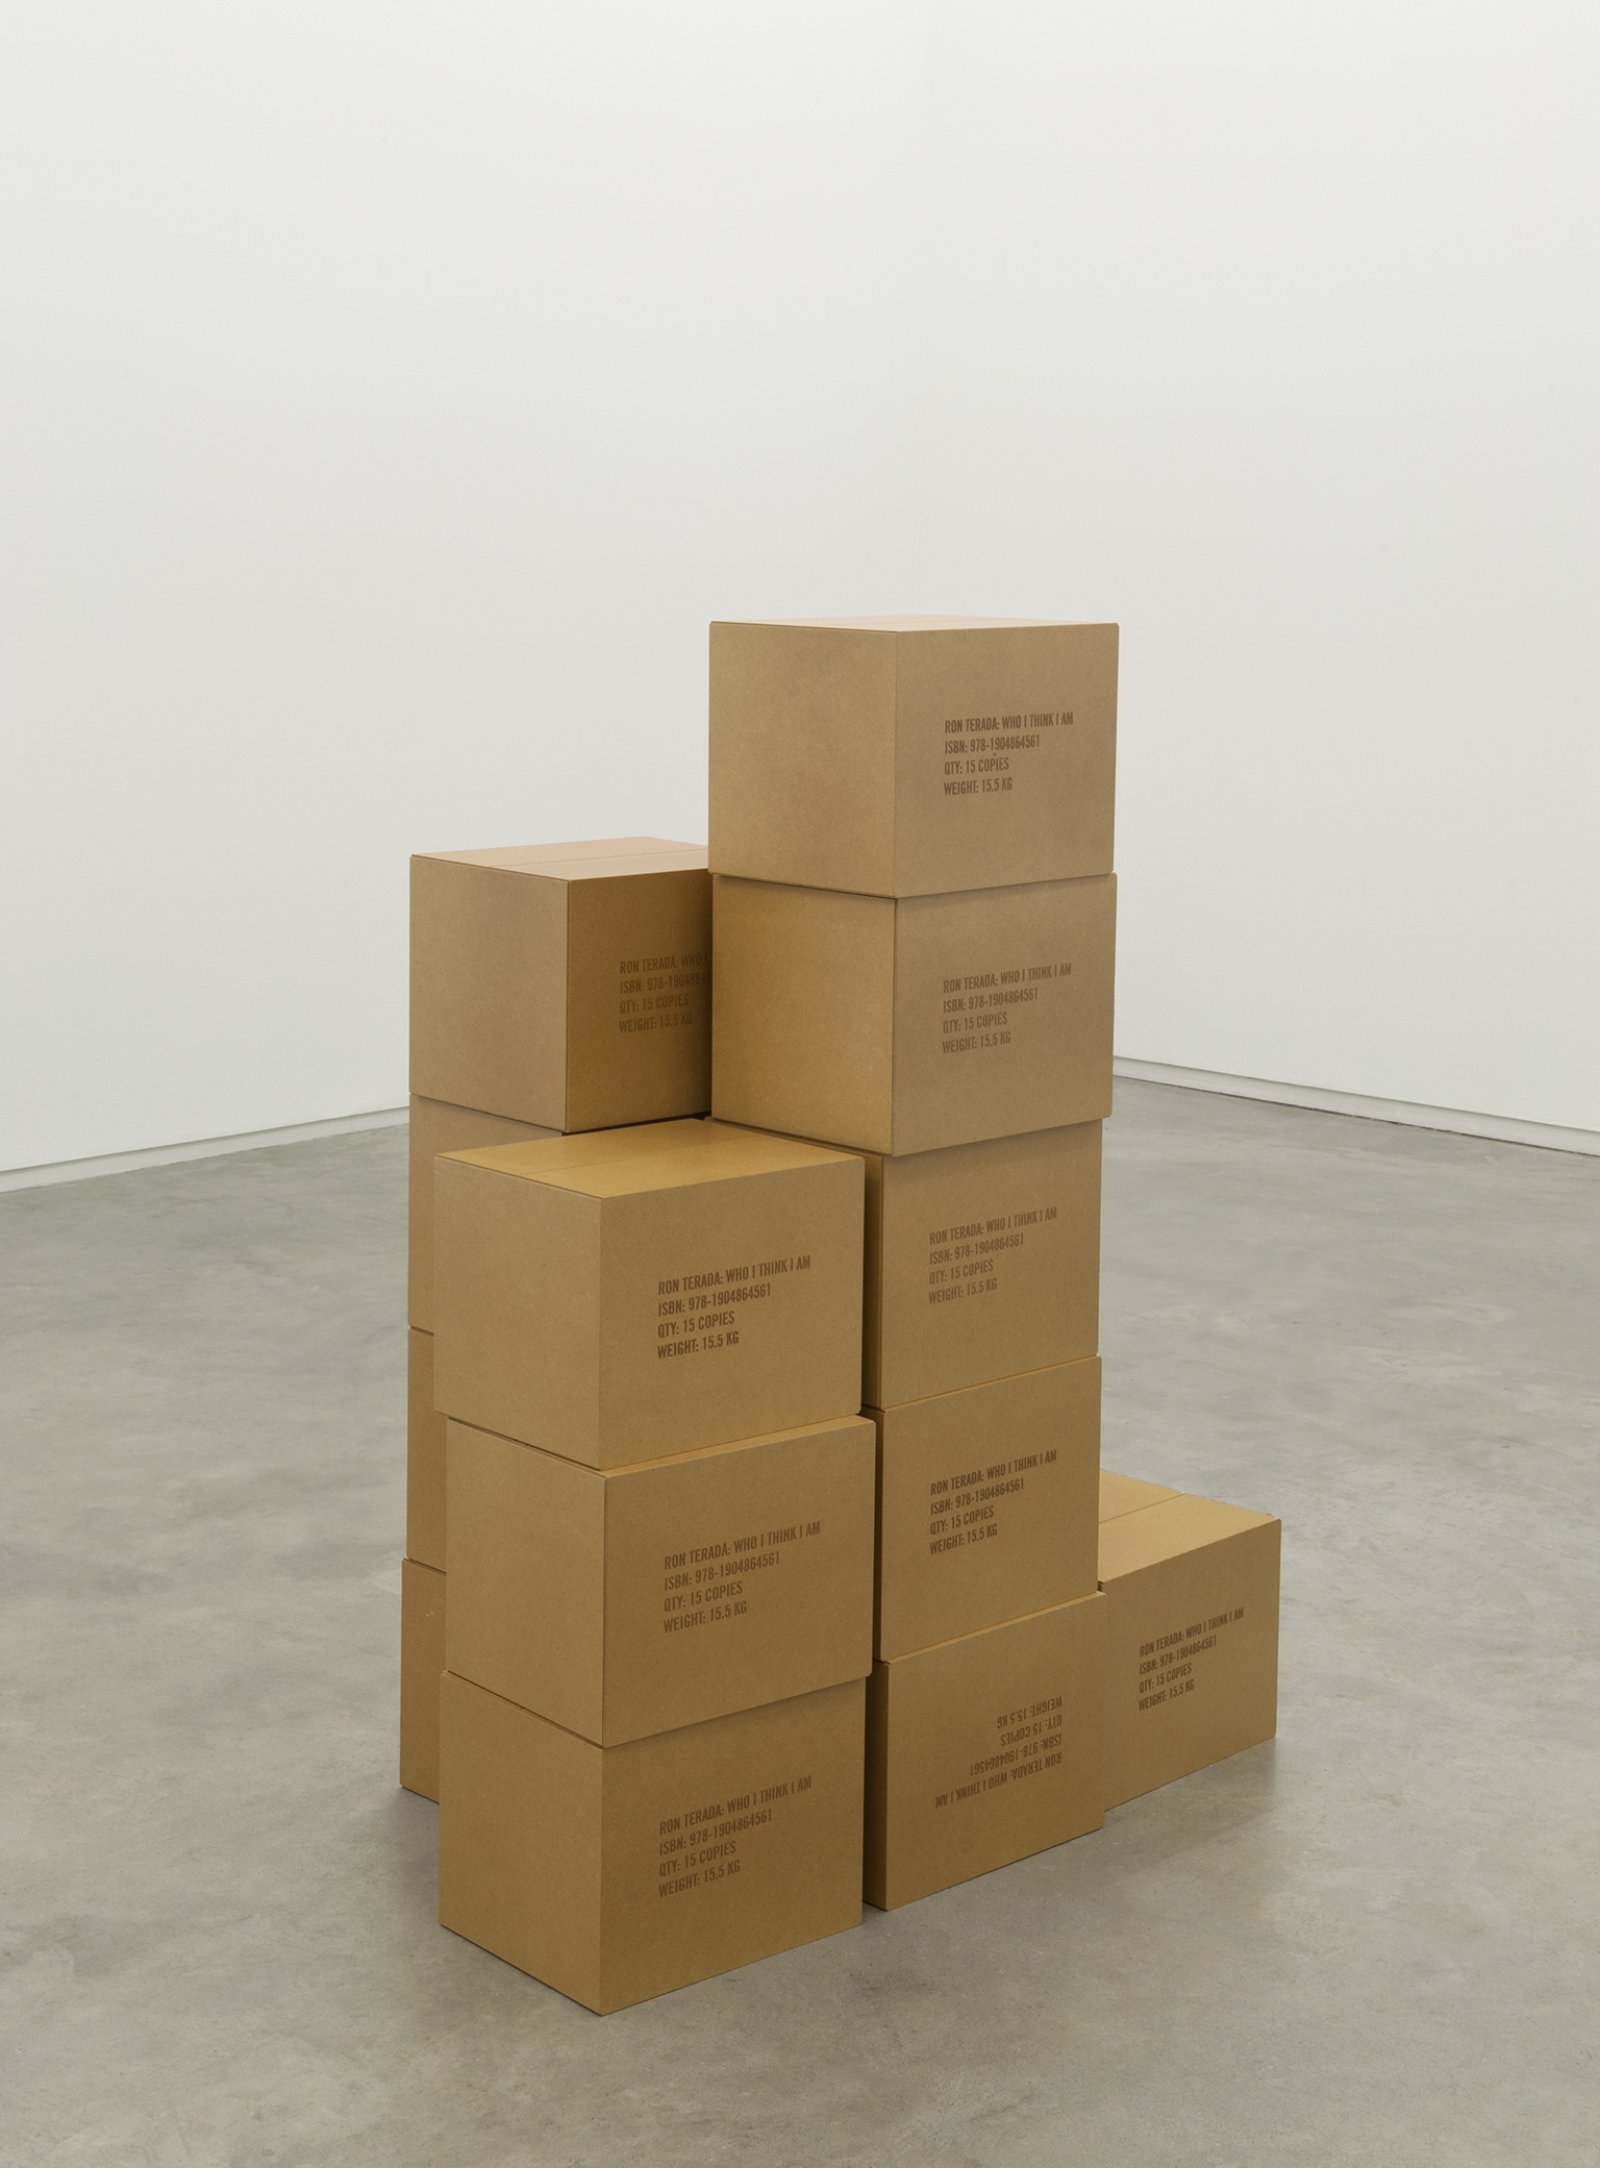 Ron Terada, Who I Think I Am, 2011, 15 MDF boxes, varnish, each 10 x 13 x 11 in. (26 x 33 x 27 cm)